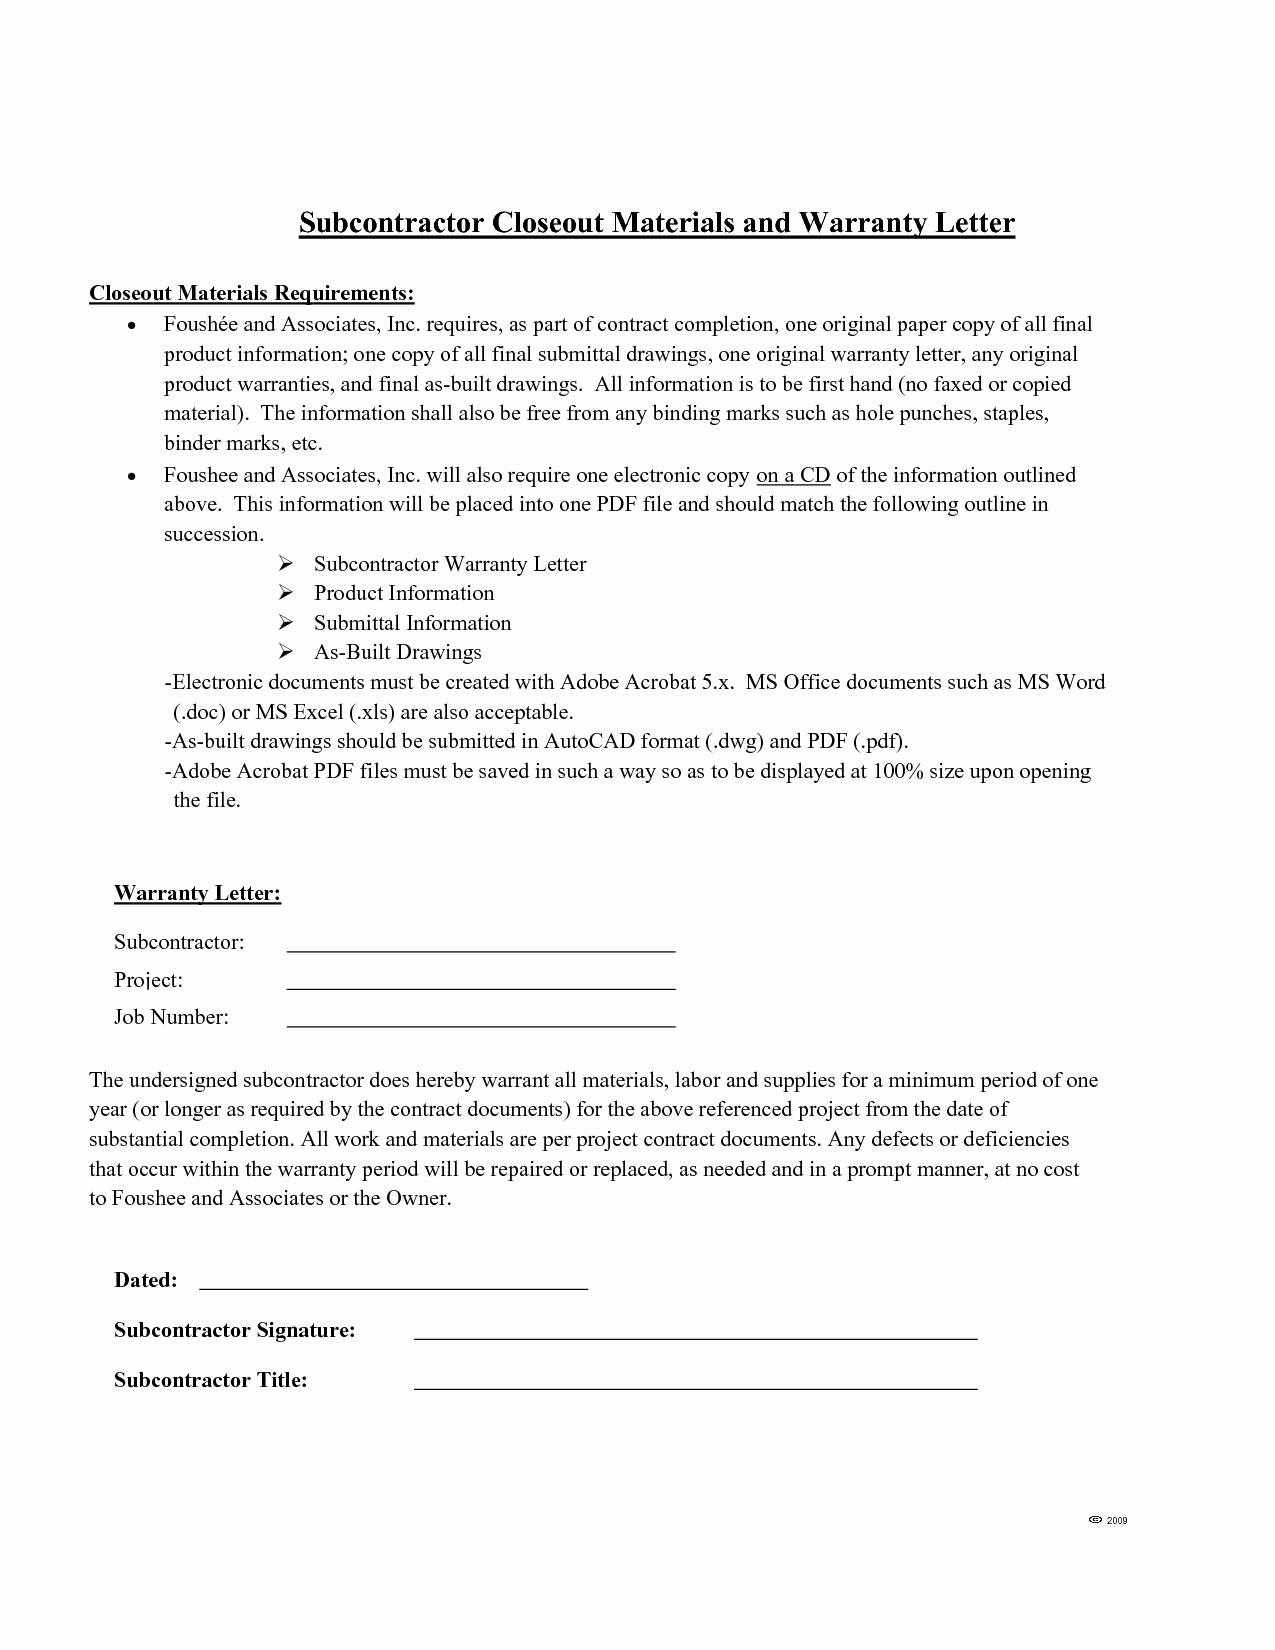 Subcontractor Warranty Letter Template - 12 Unique Land Contract Agreement